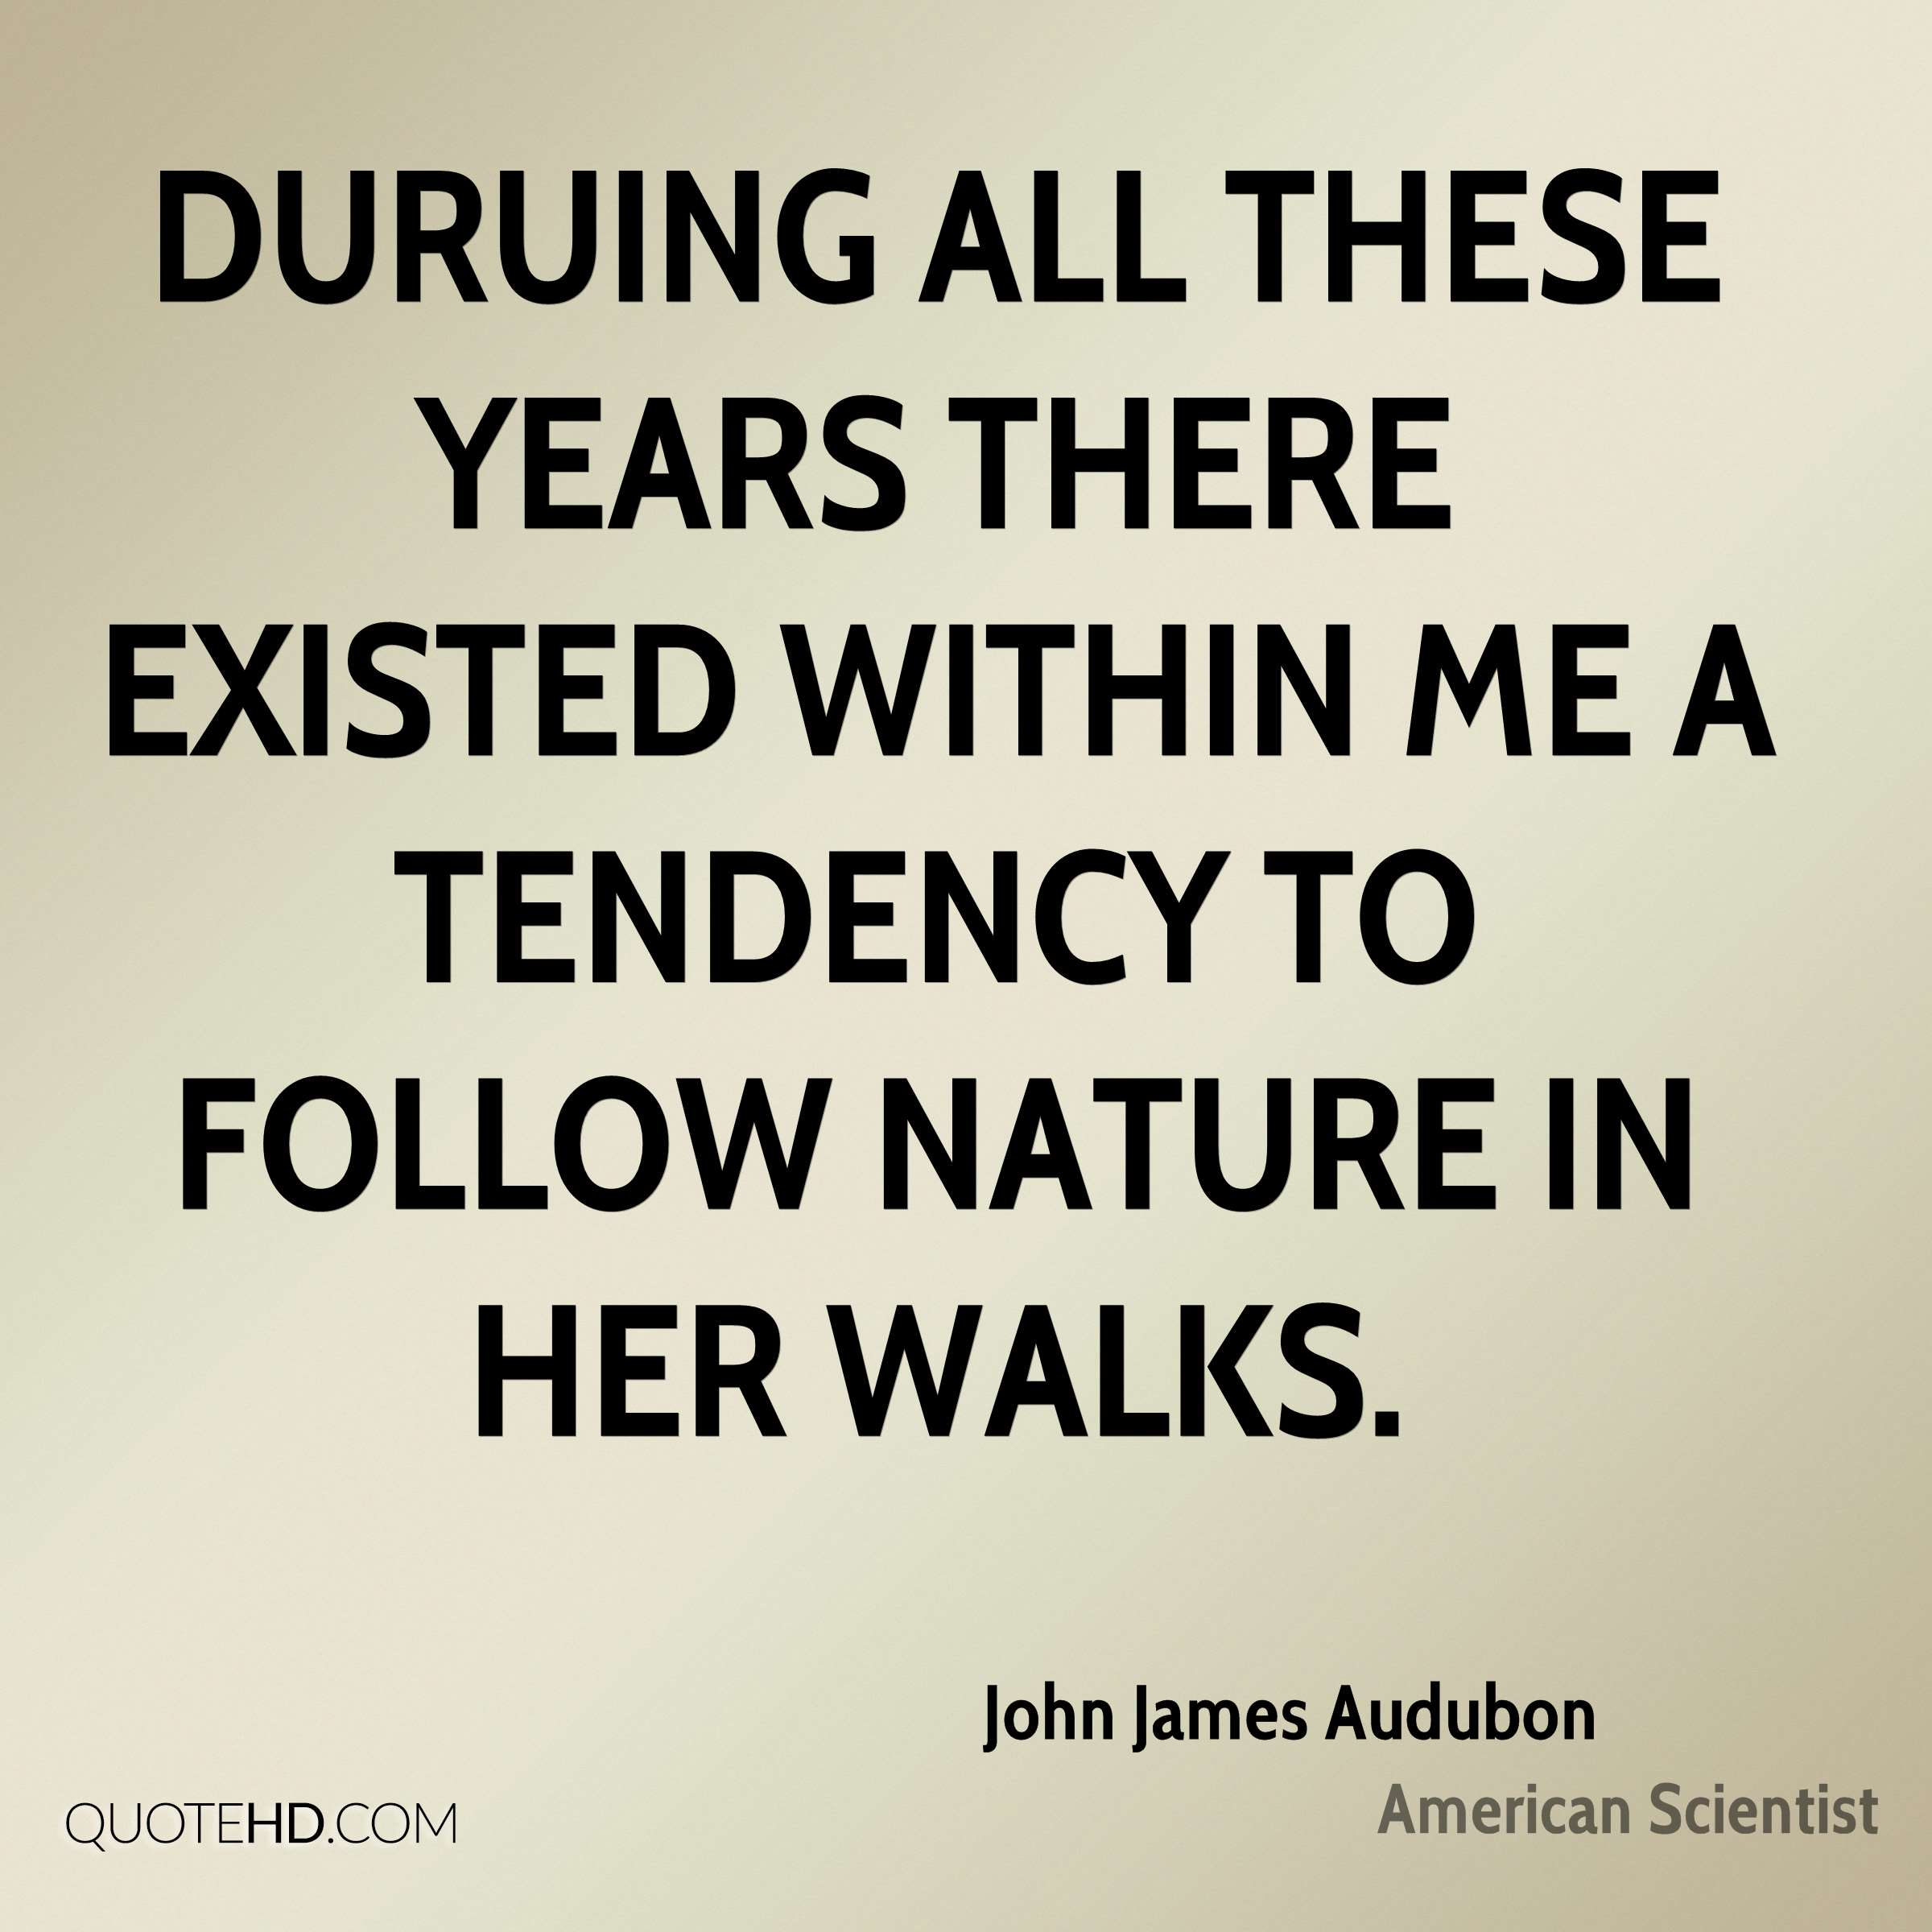 Duruing all these years there existed within me a tendency to follow Nature in her walks.